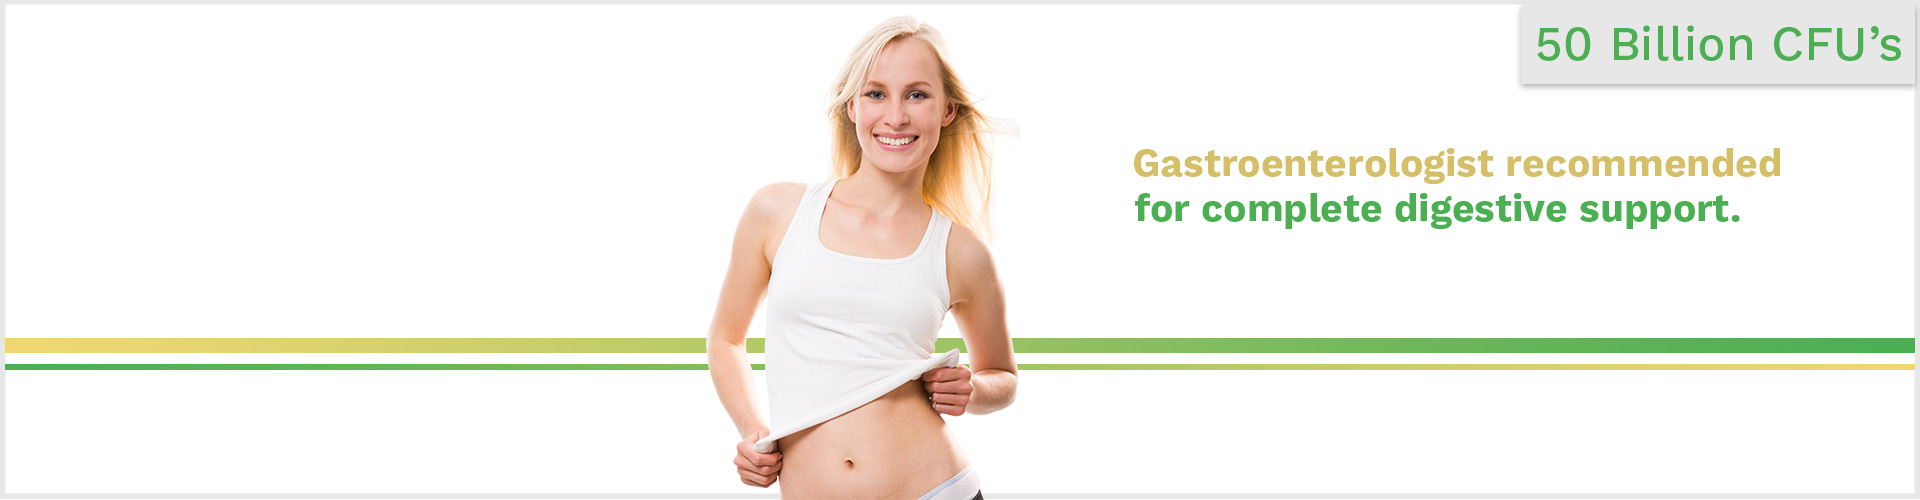 Gastroenterologist recommended for complete digestive support.